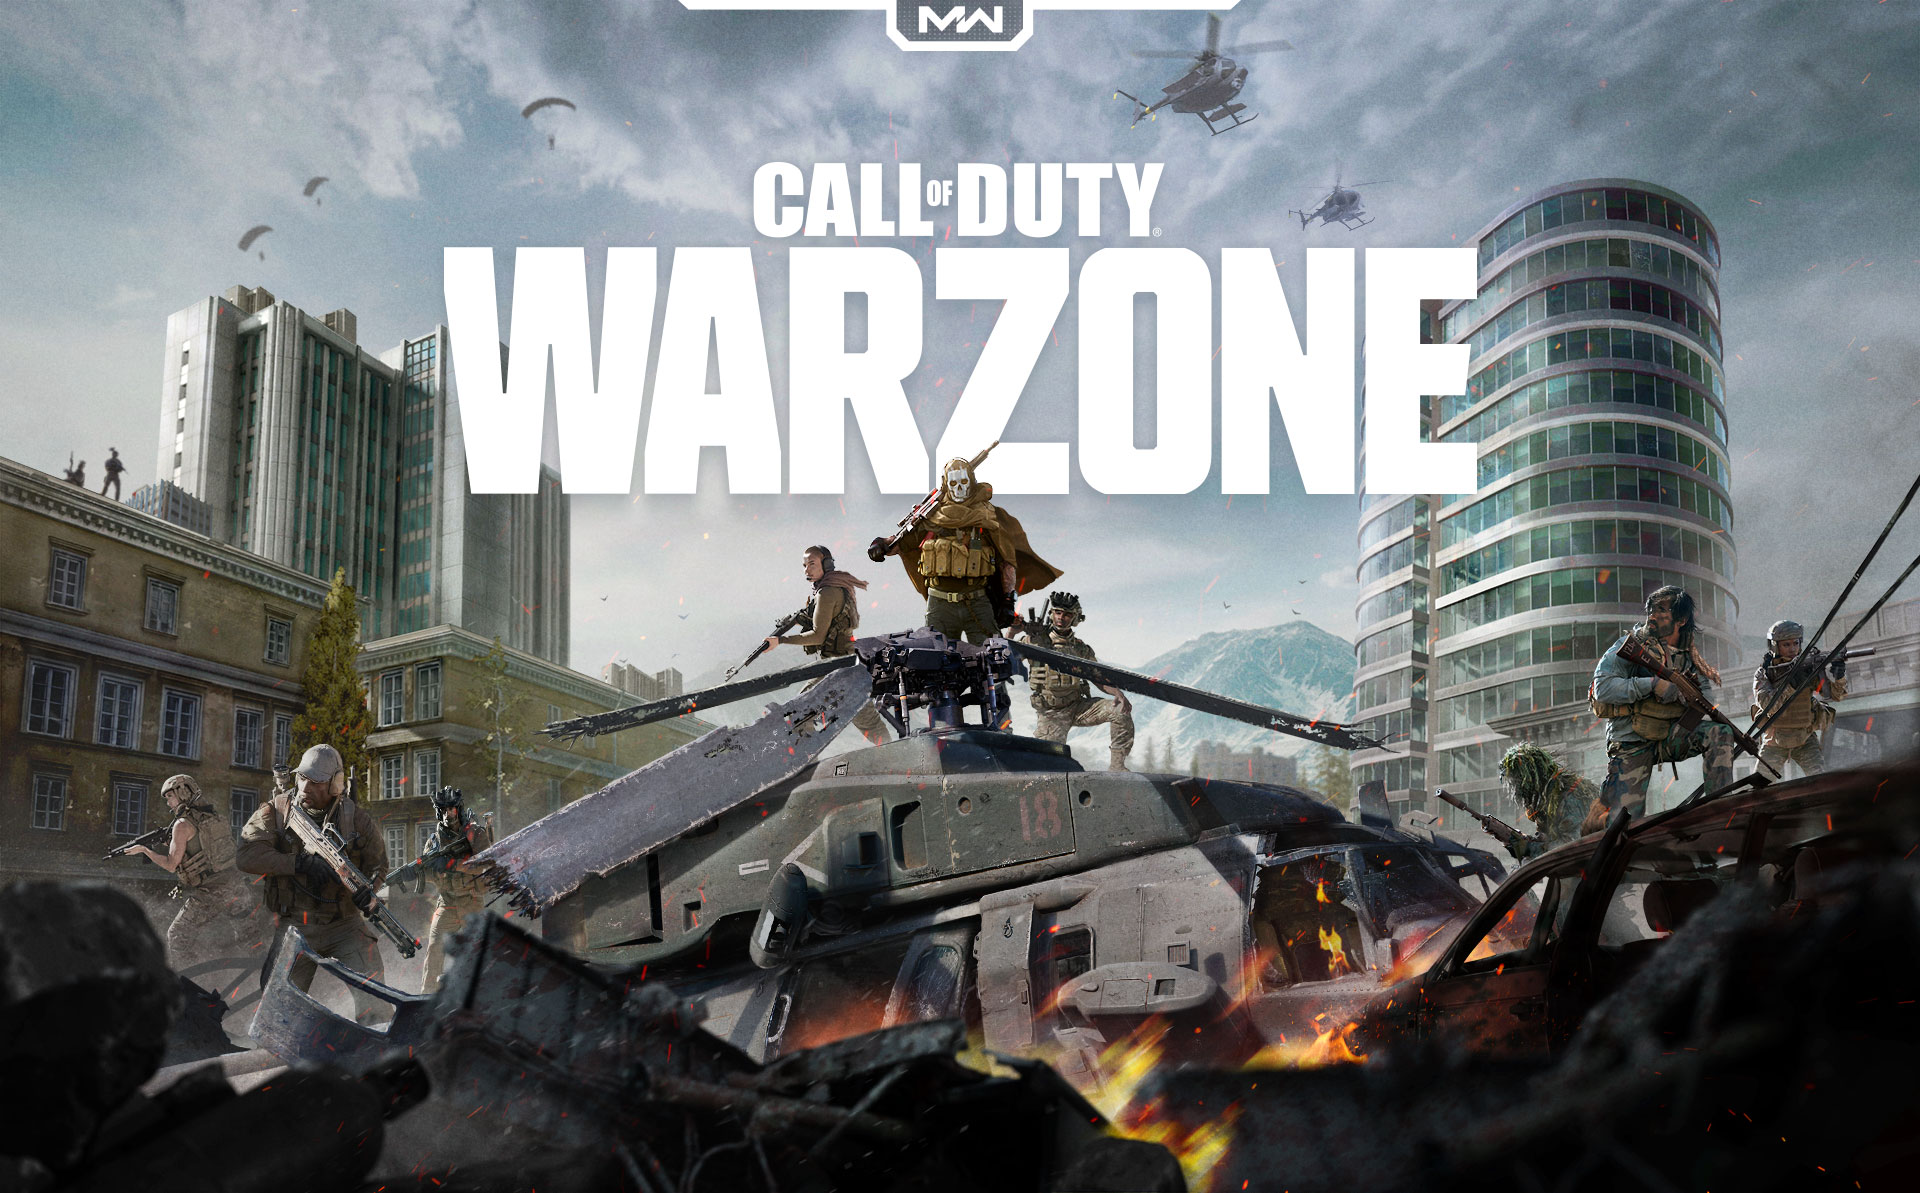 Introducing a game-changing FREE-TO-PLAY experience - Call of Duty®: Warzone